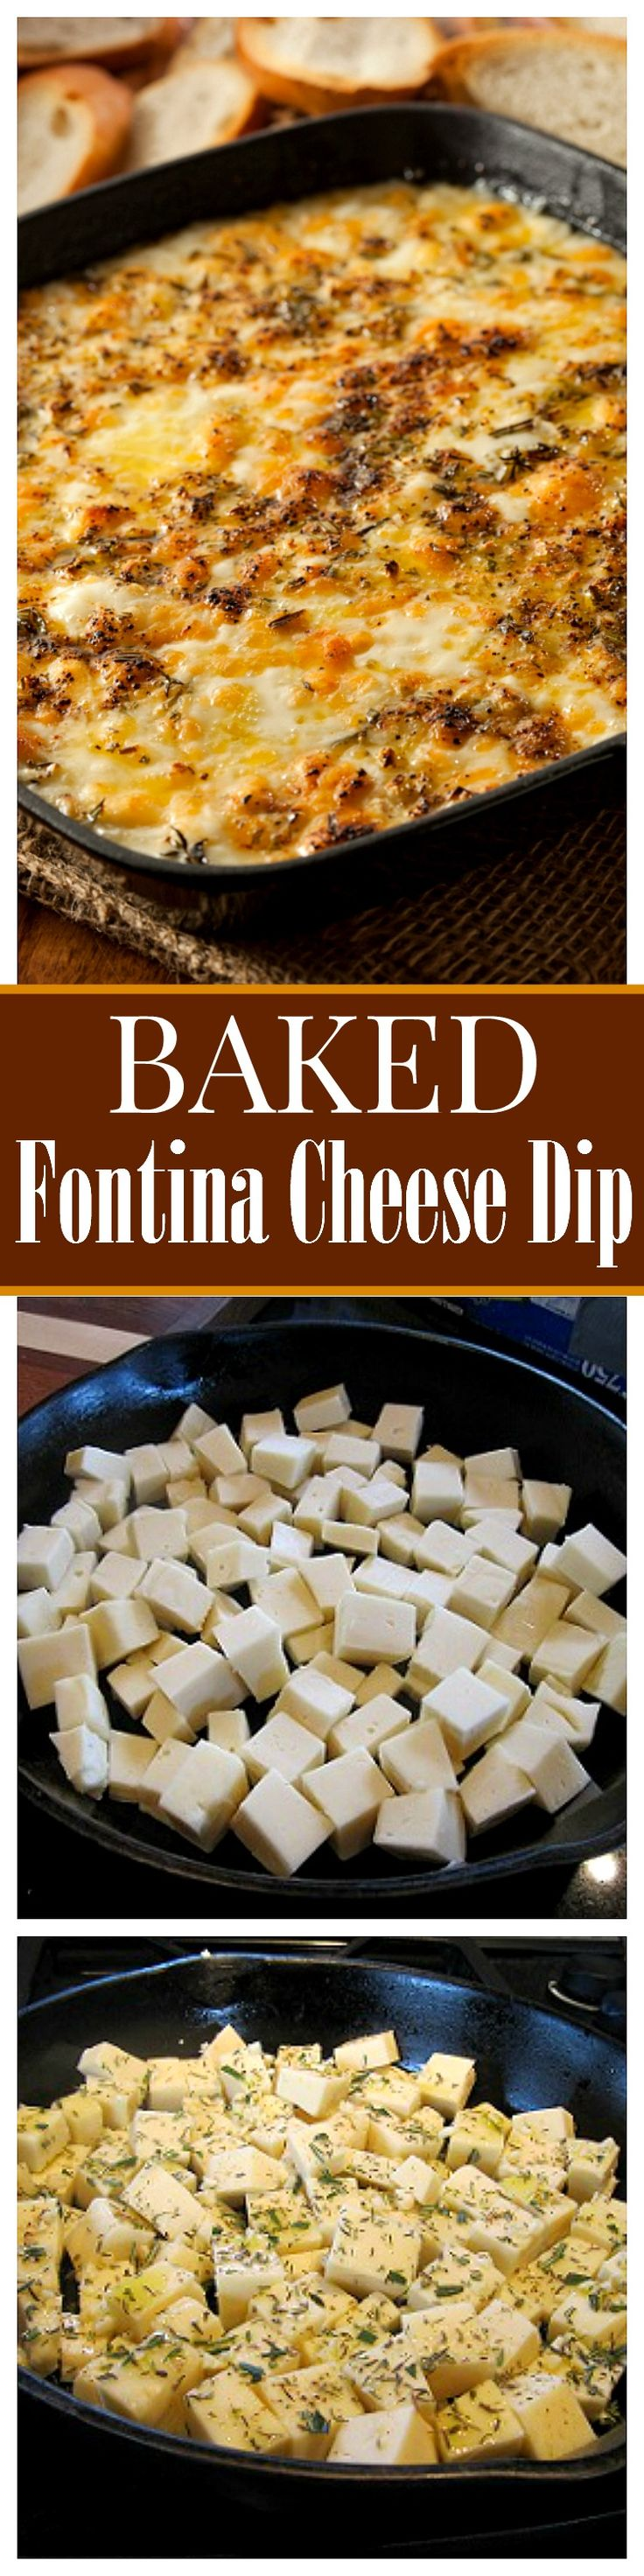 Baked Fontina Cheese Dip - If you like cheese at all, you will LOVE this Fontina Cheese Dip and should try it as soon as possible!